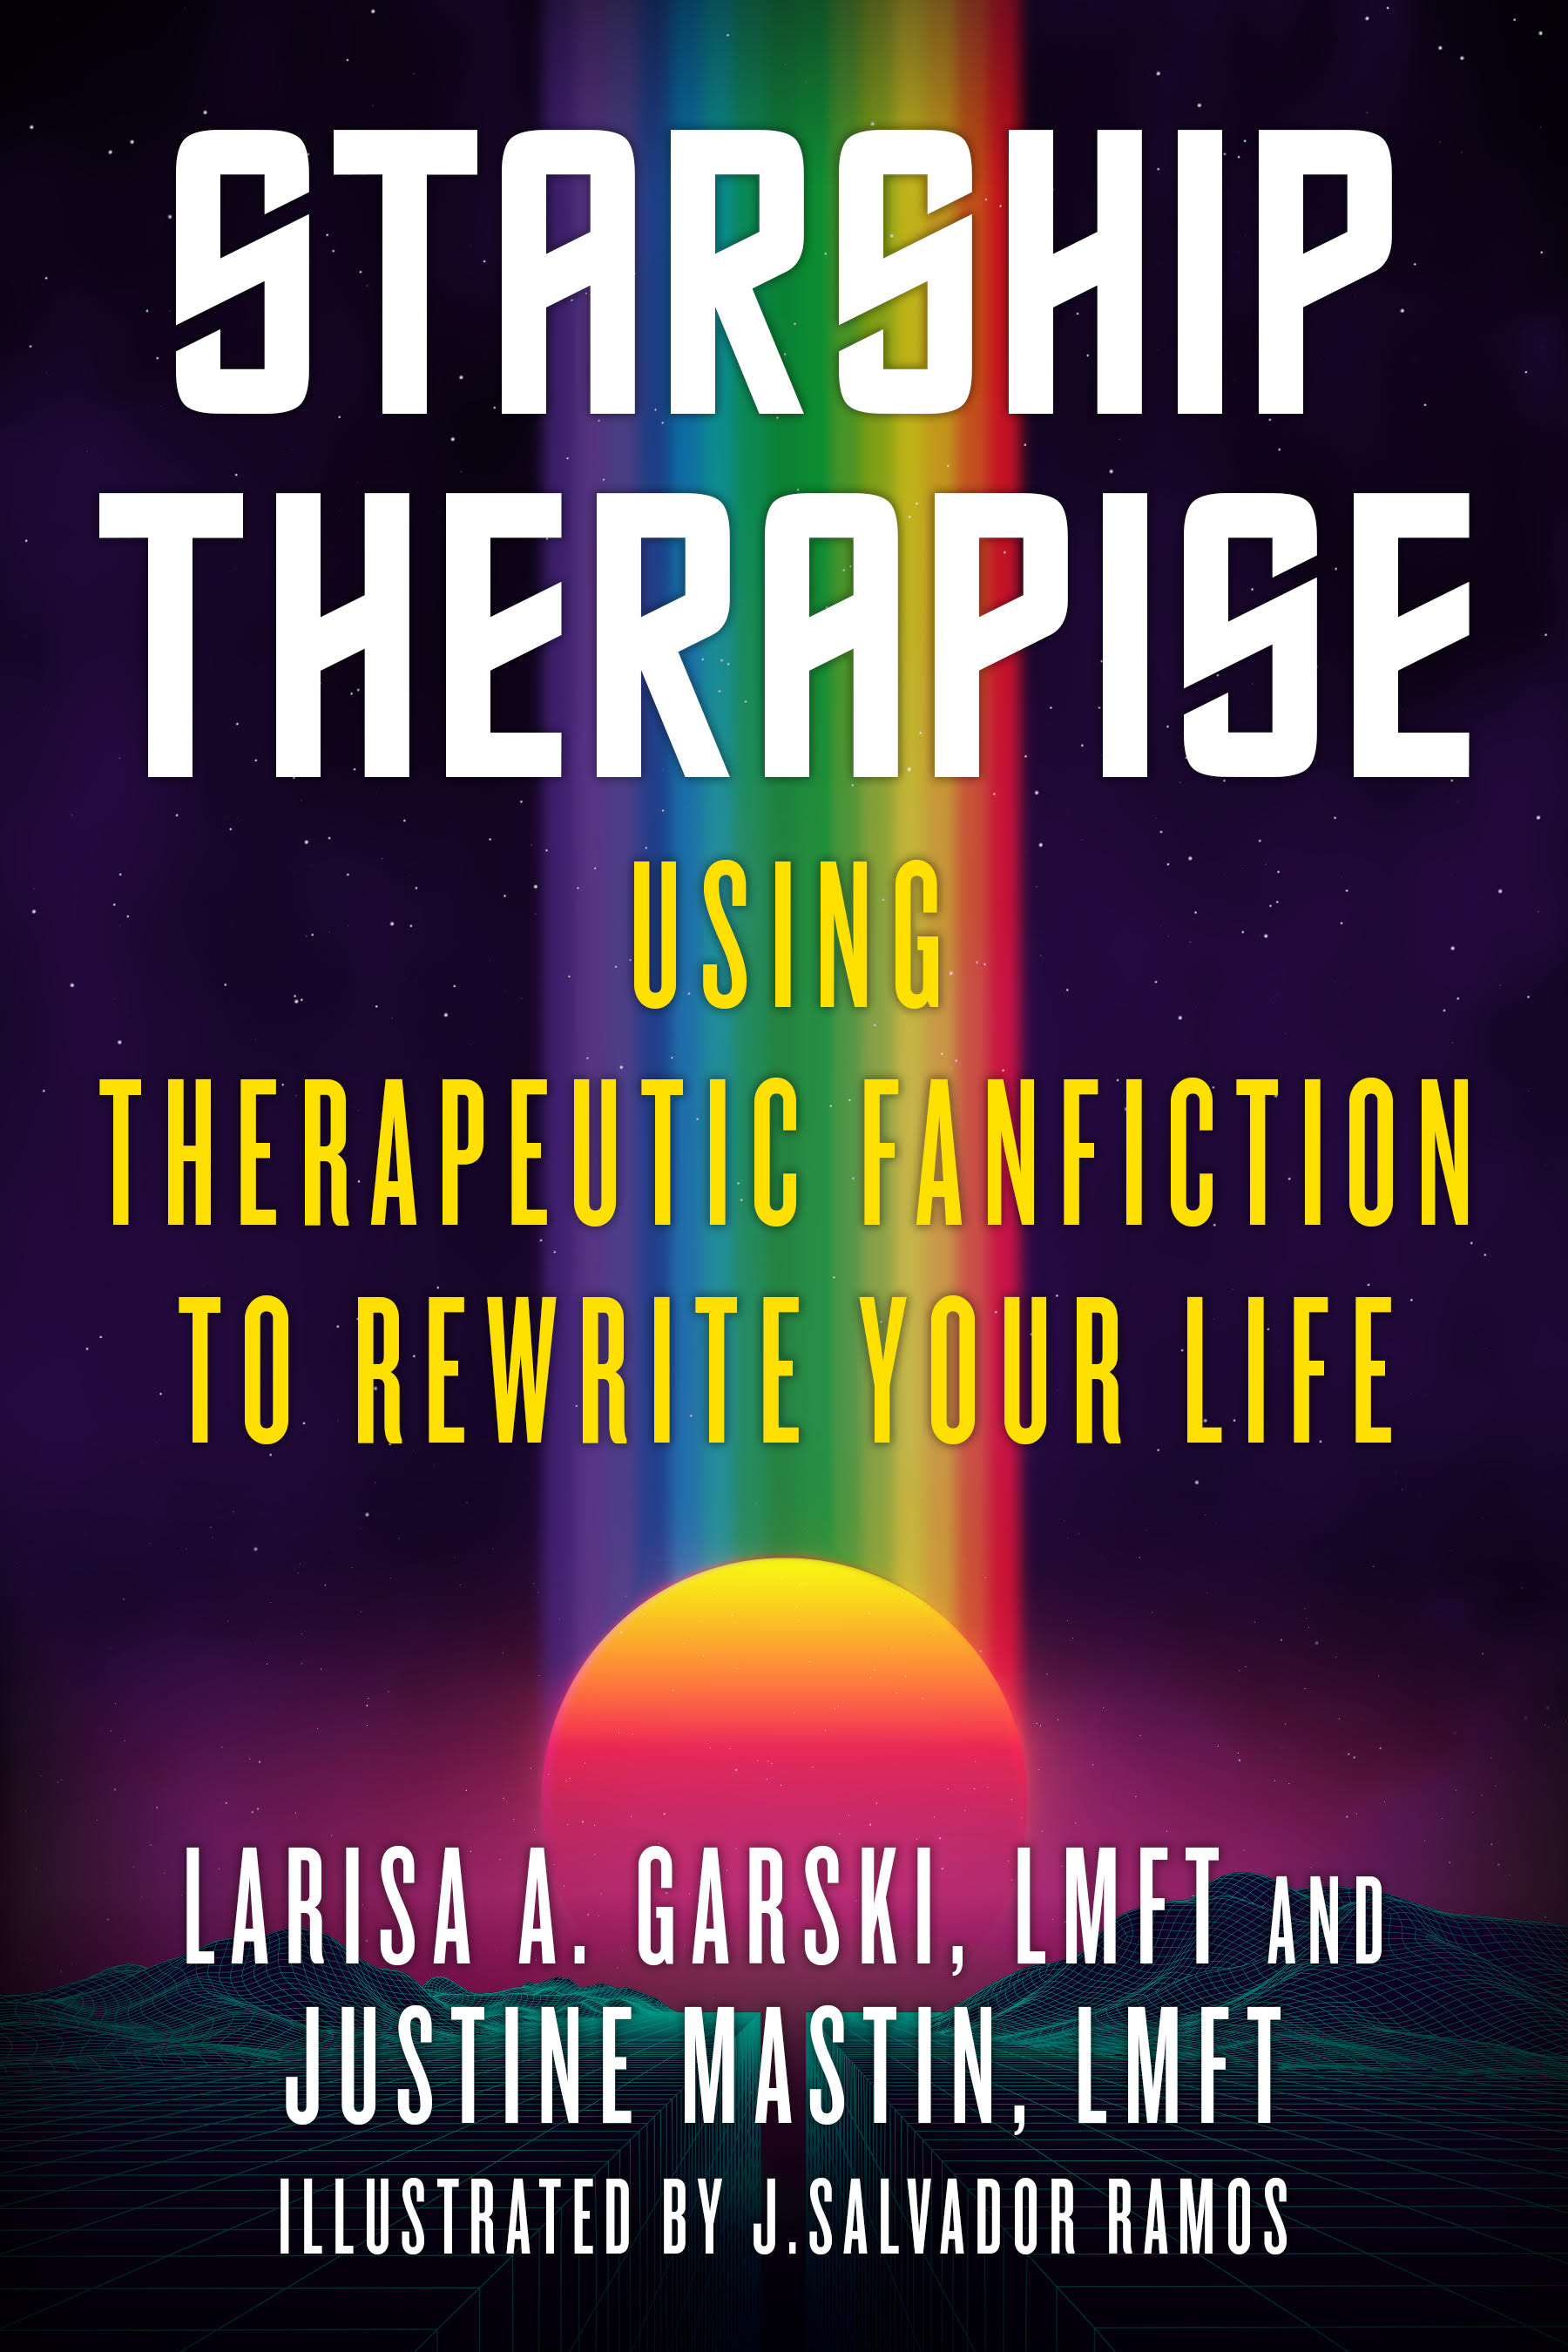 Starship Therapise: Using Therapeutic Fanfiction to Rewrite Your Life book cover art.